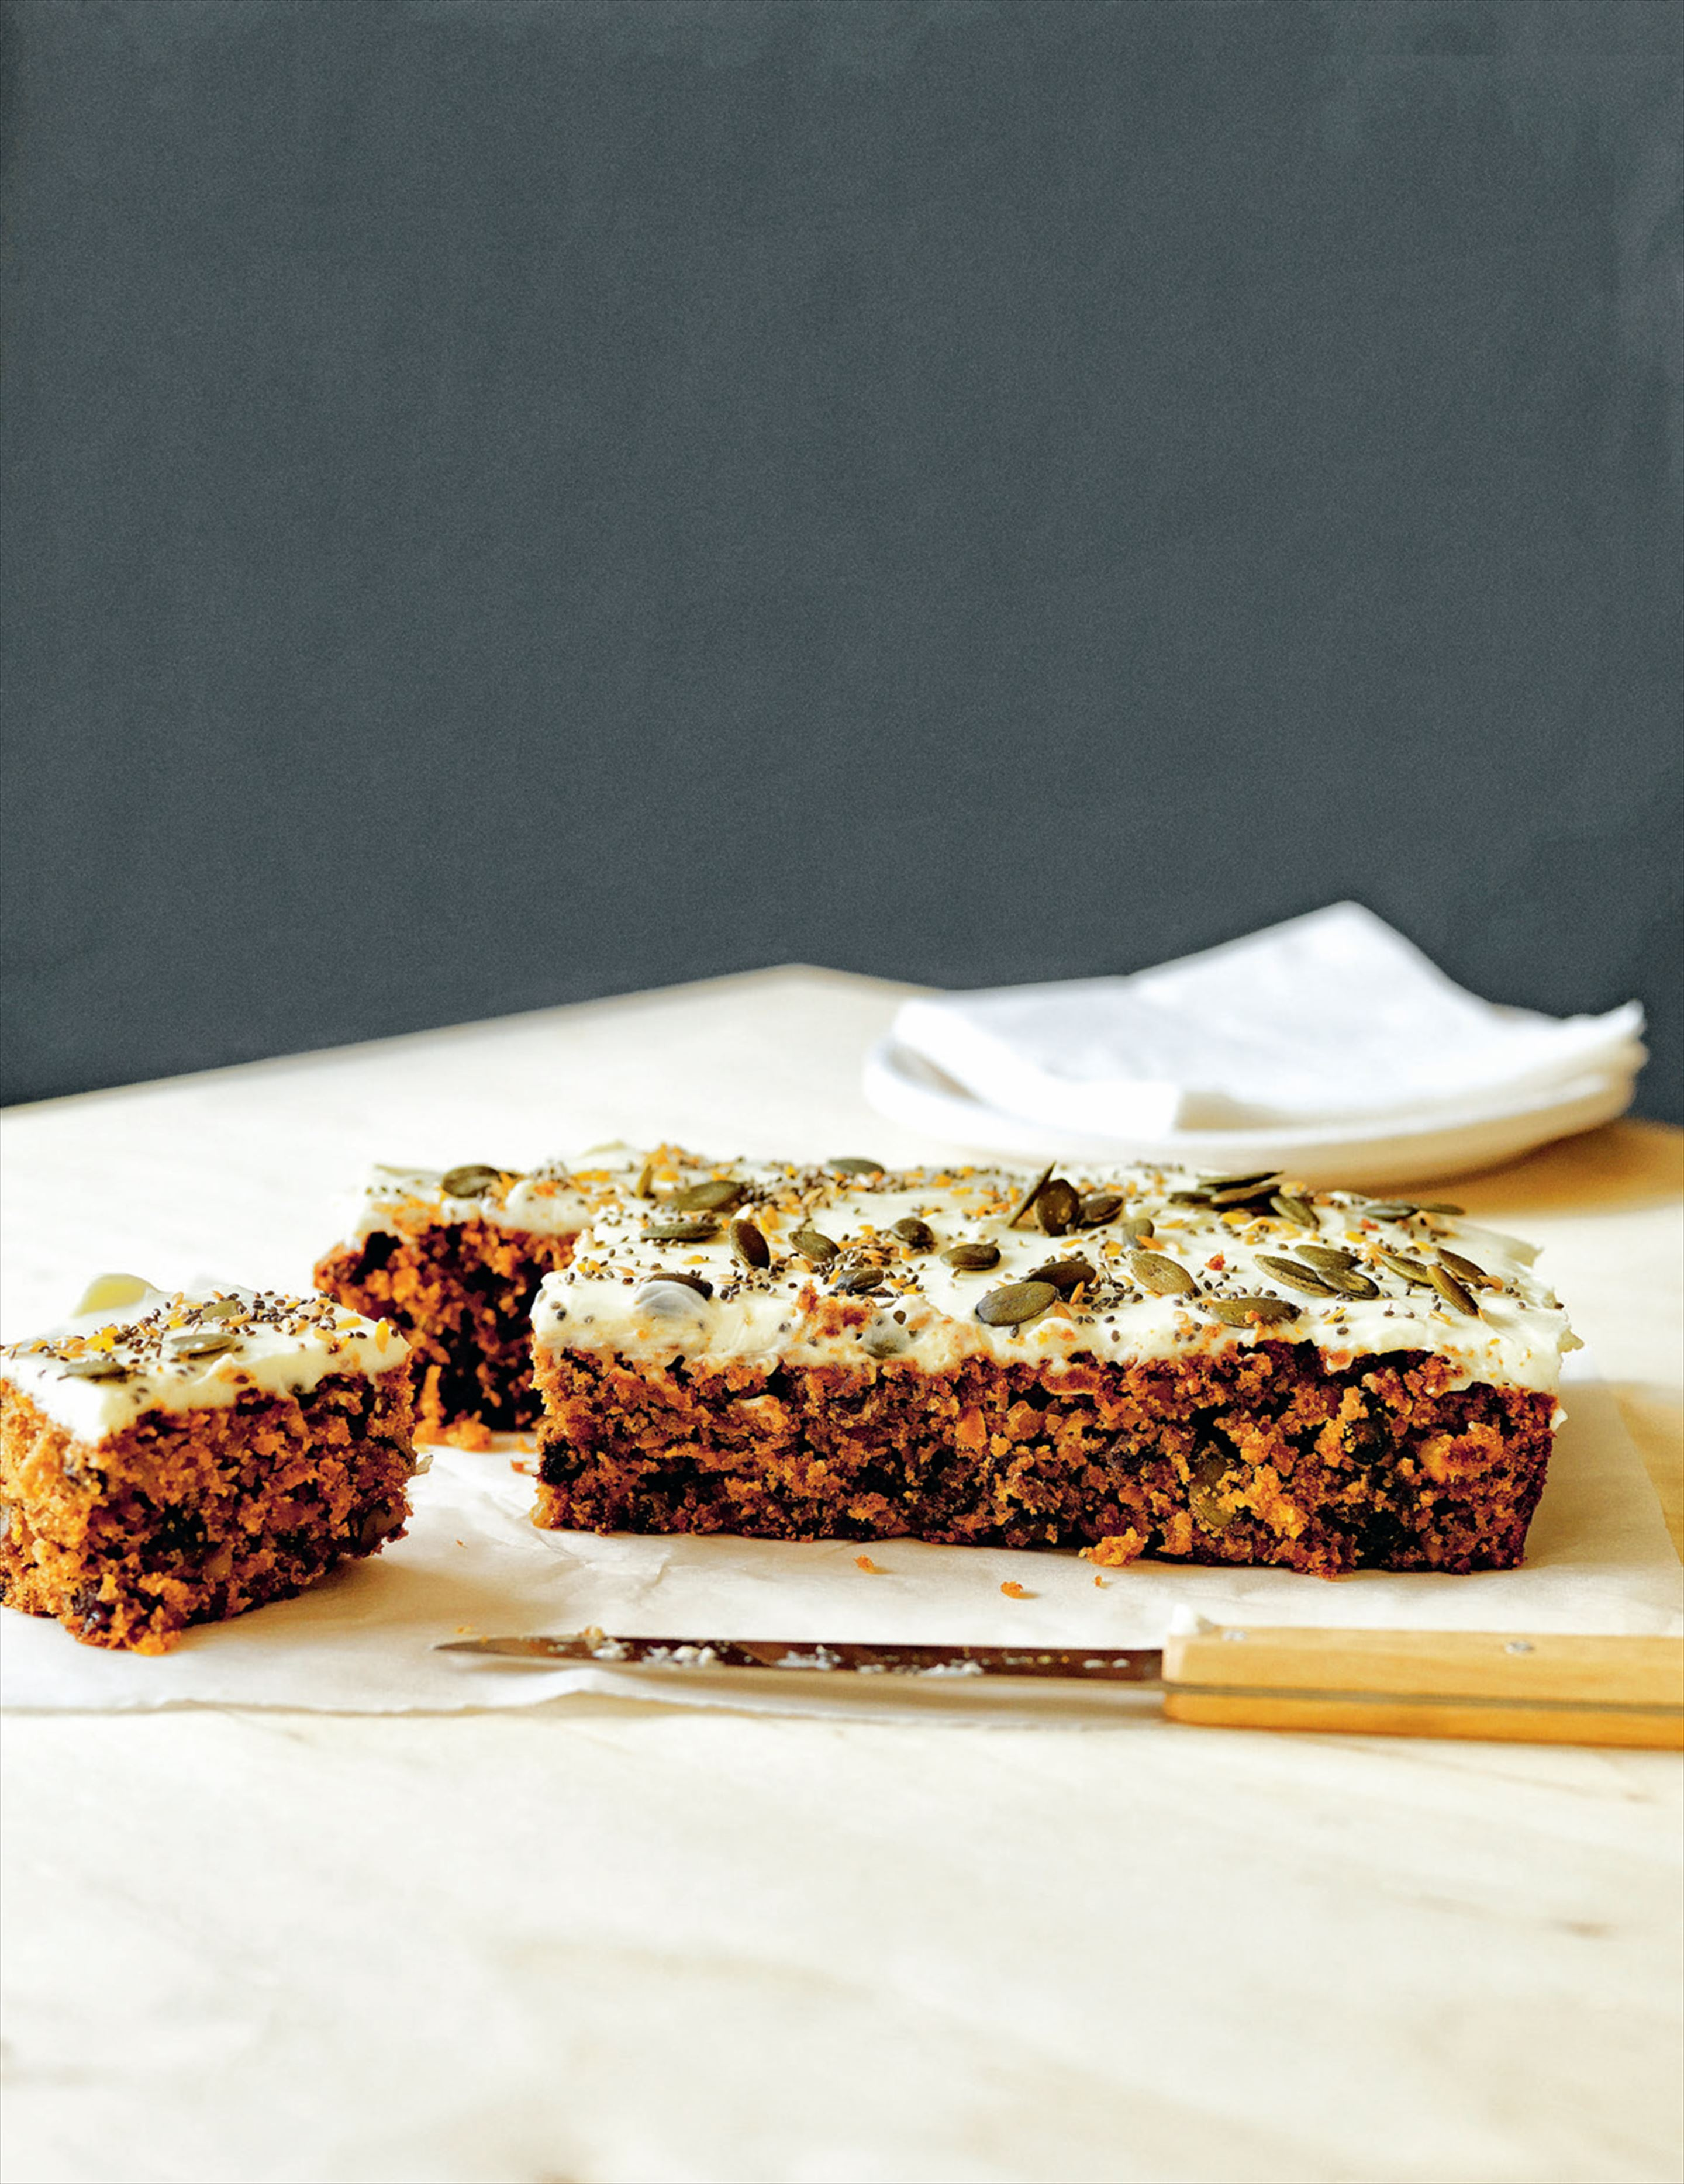 Super seeded carrot cake